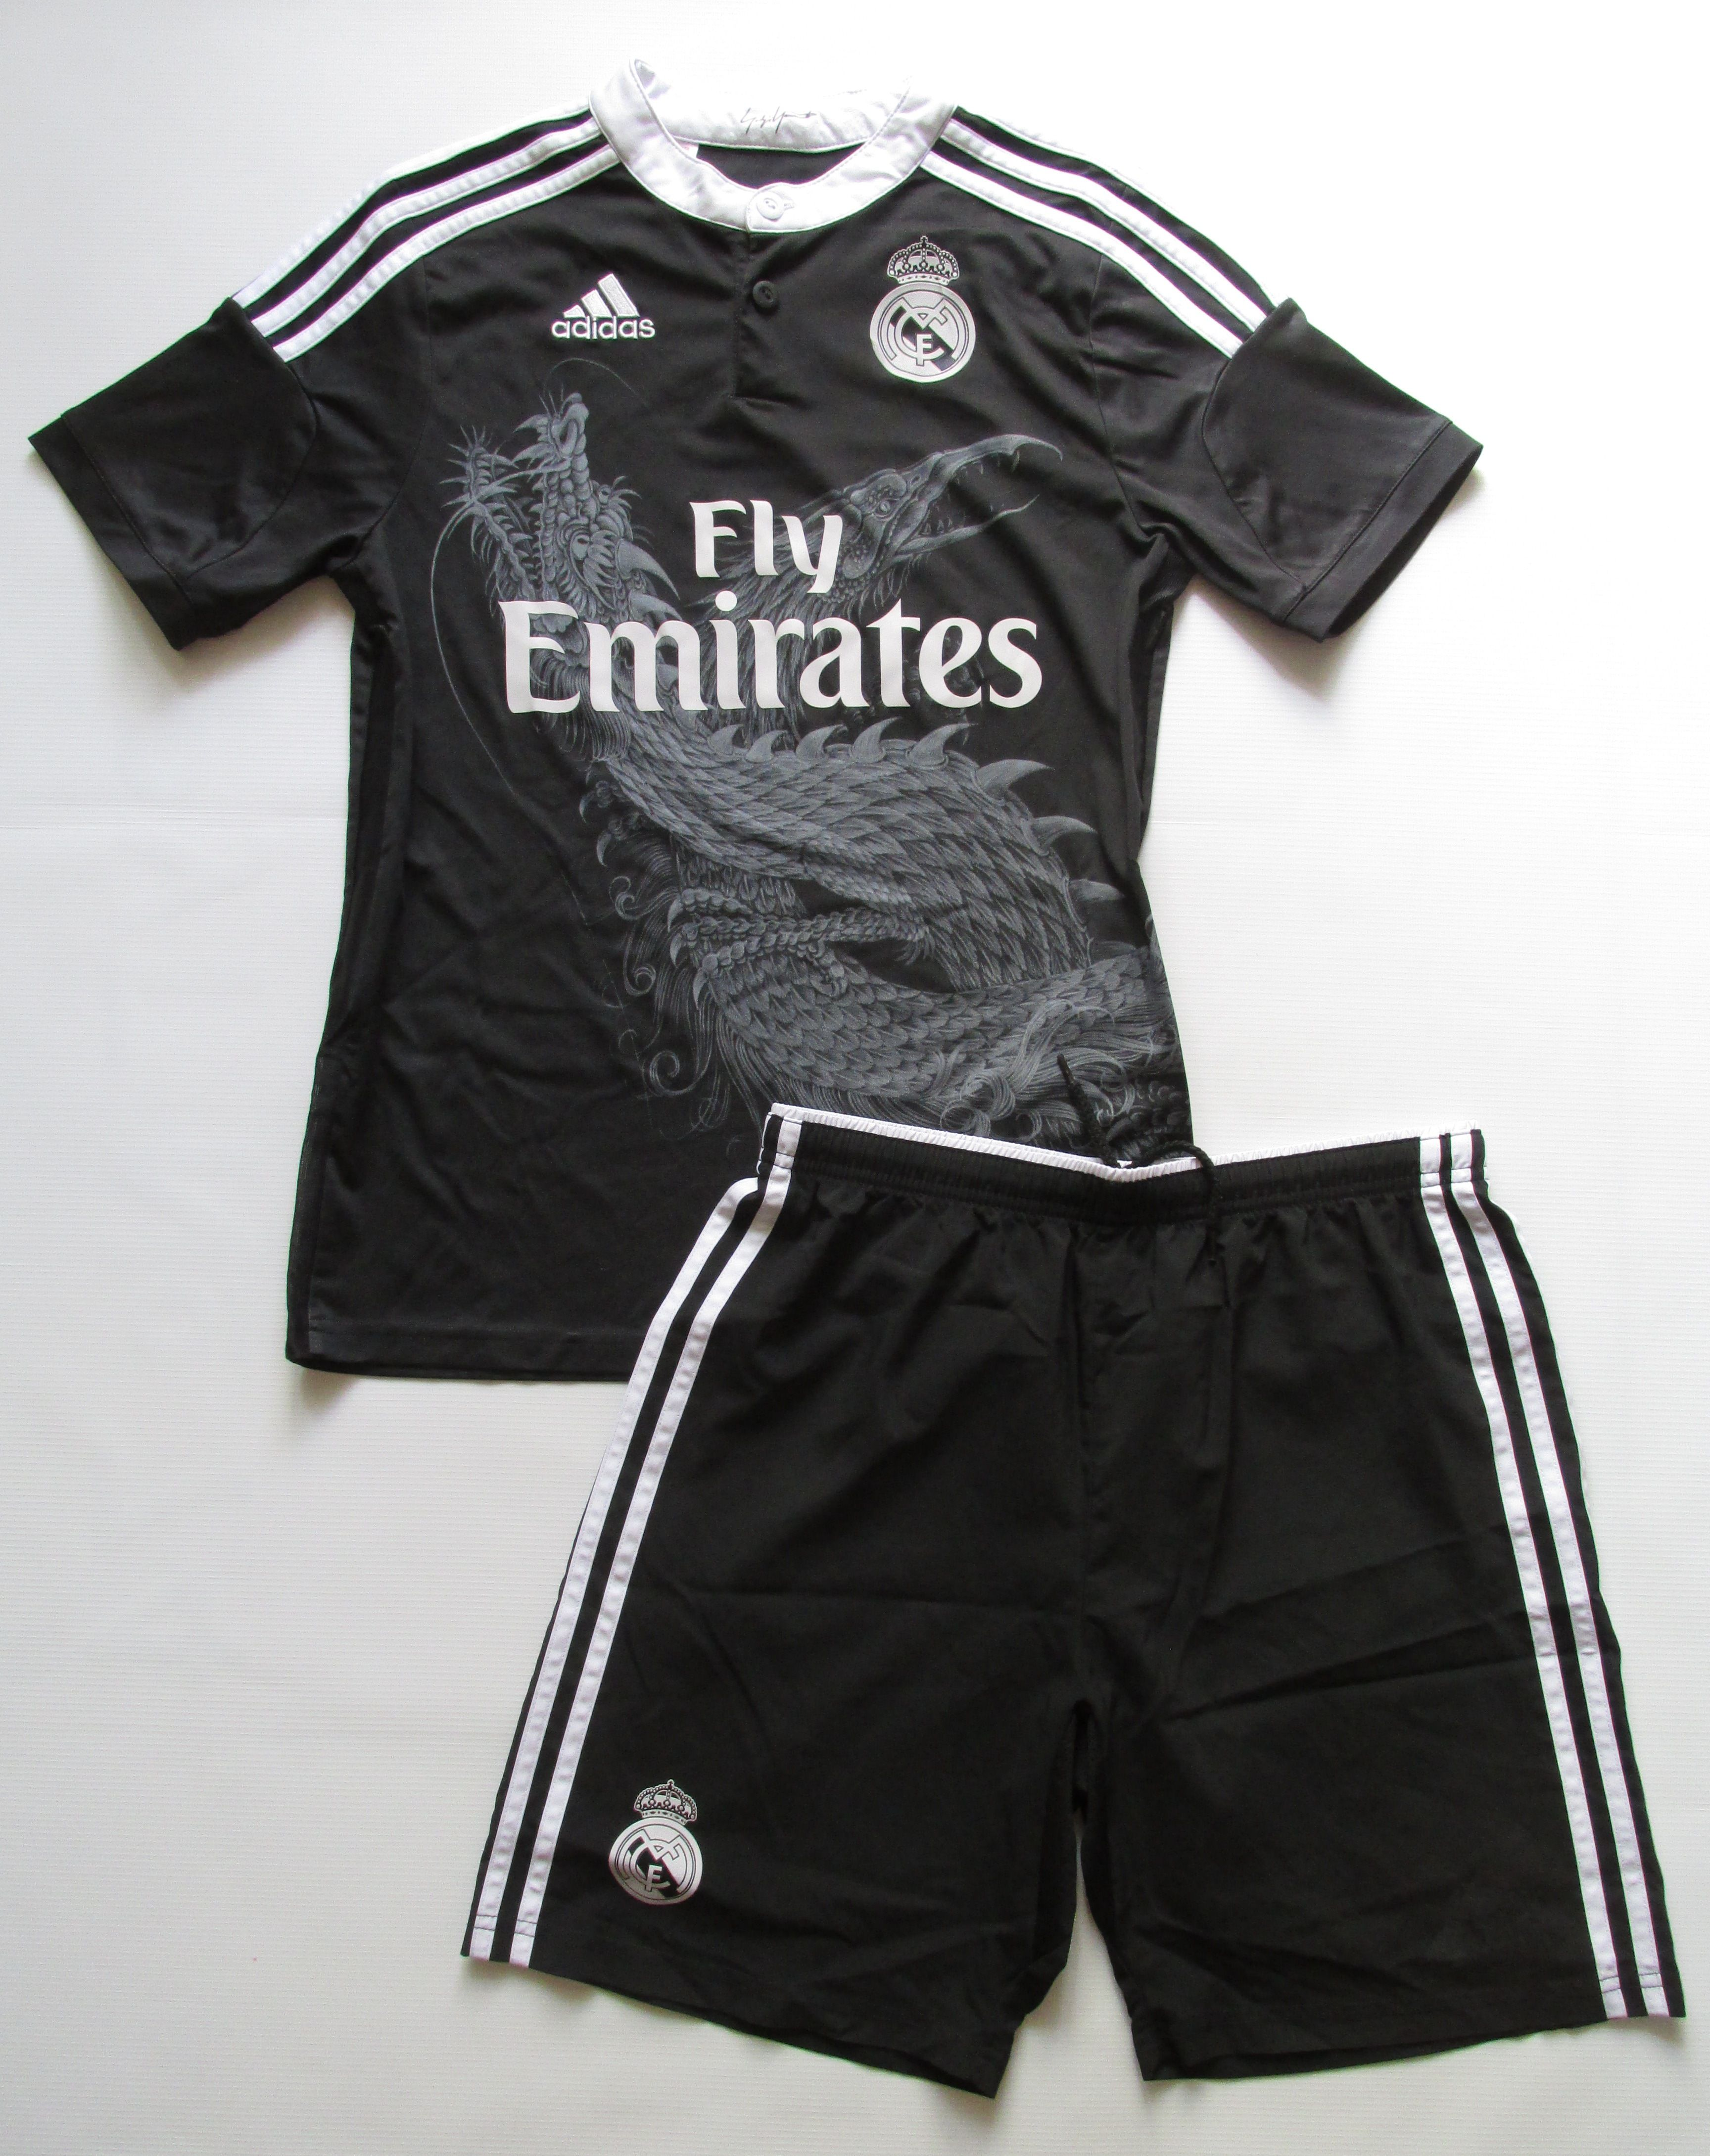 155f472dba Real Madrid 2014 2015 third football kit by Adidas   Yohji Yamamoto Spain  footballshirt jersey